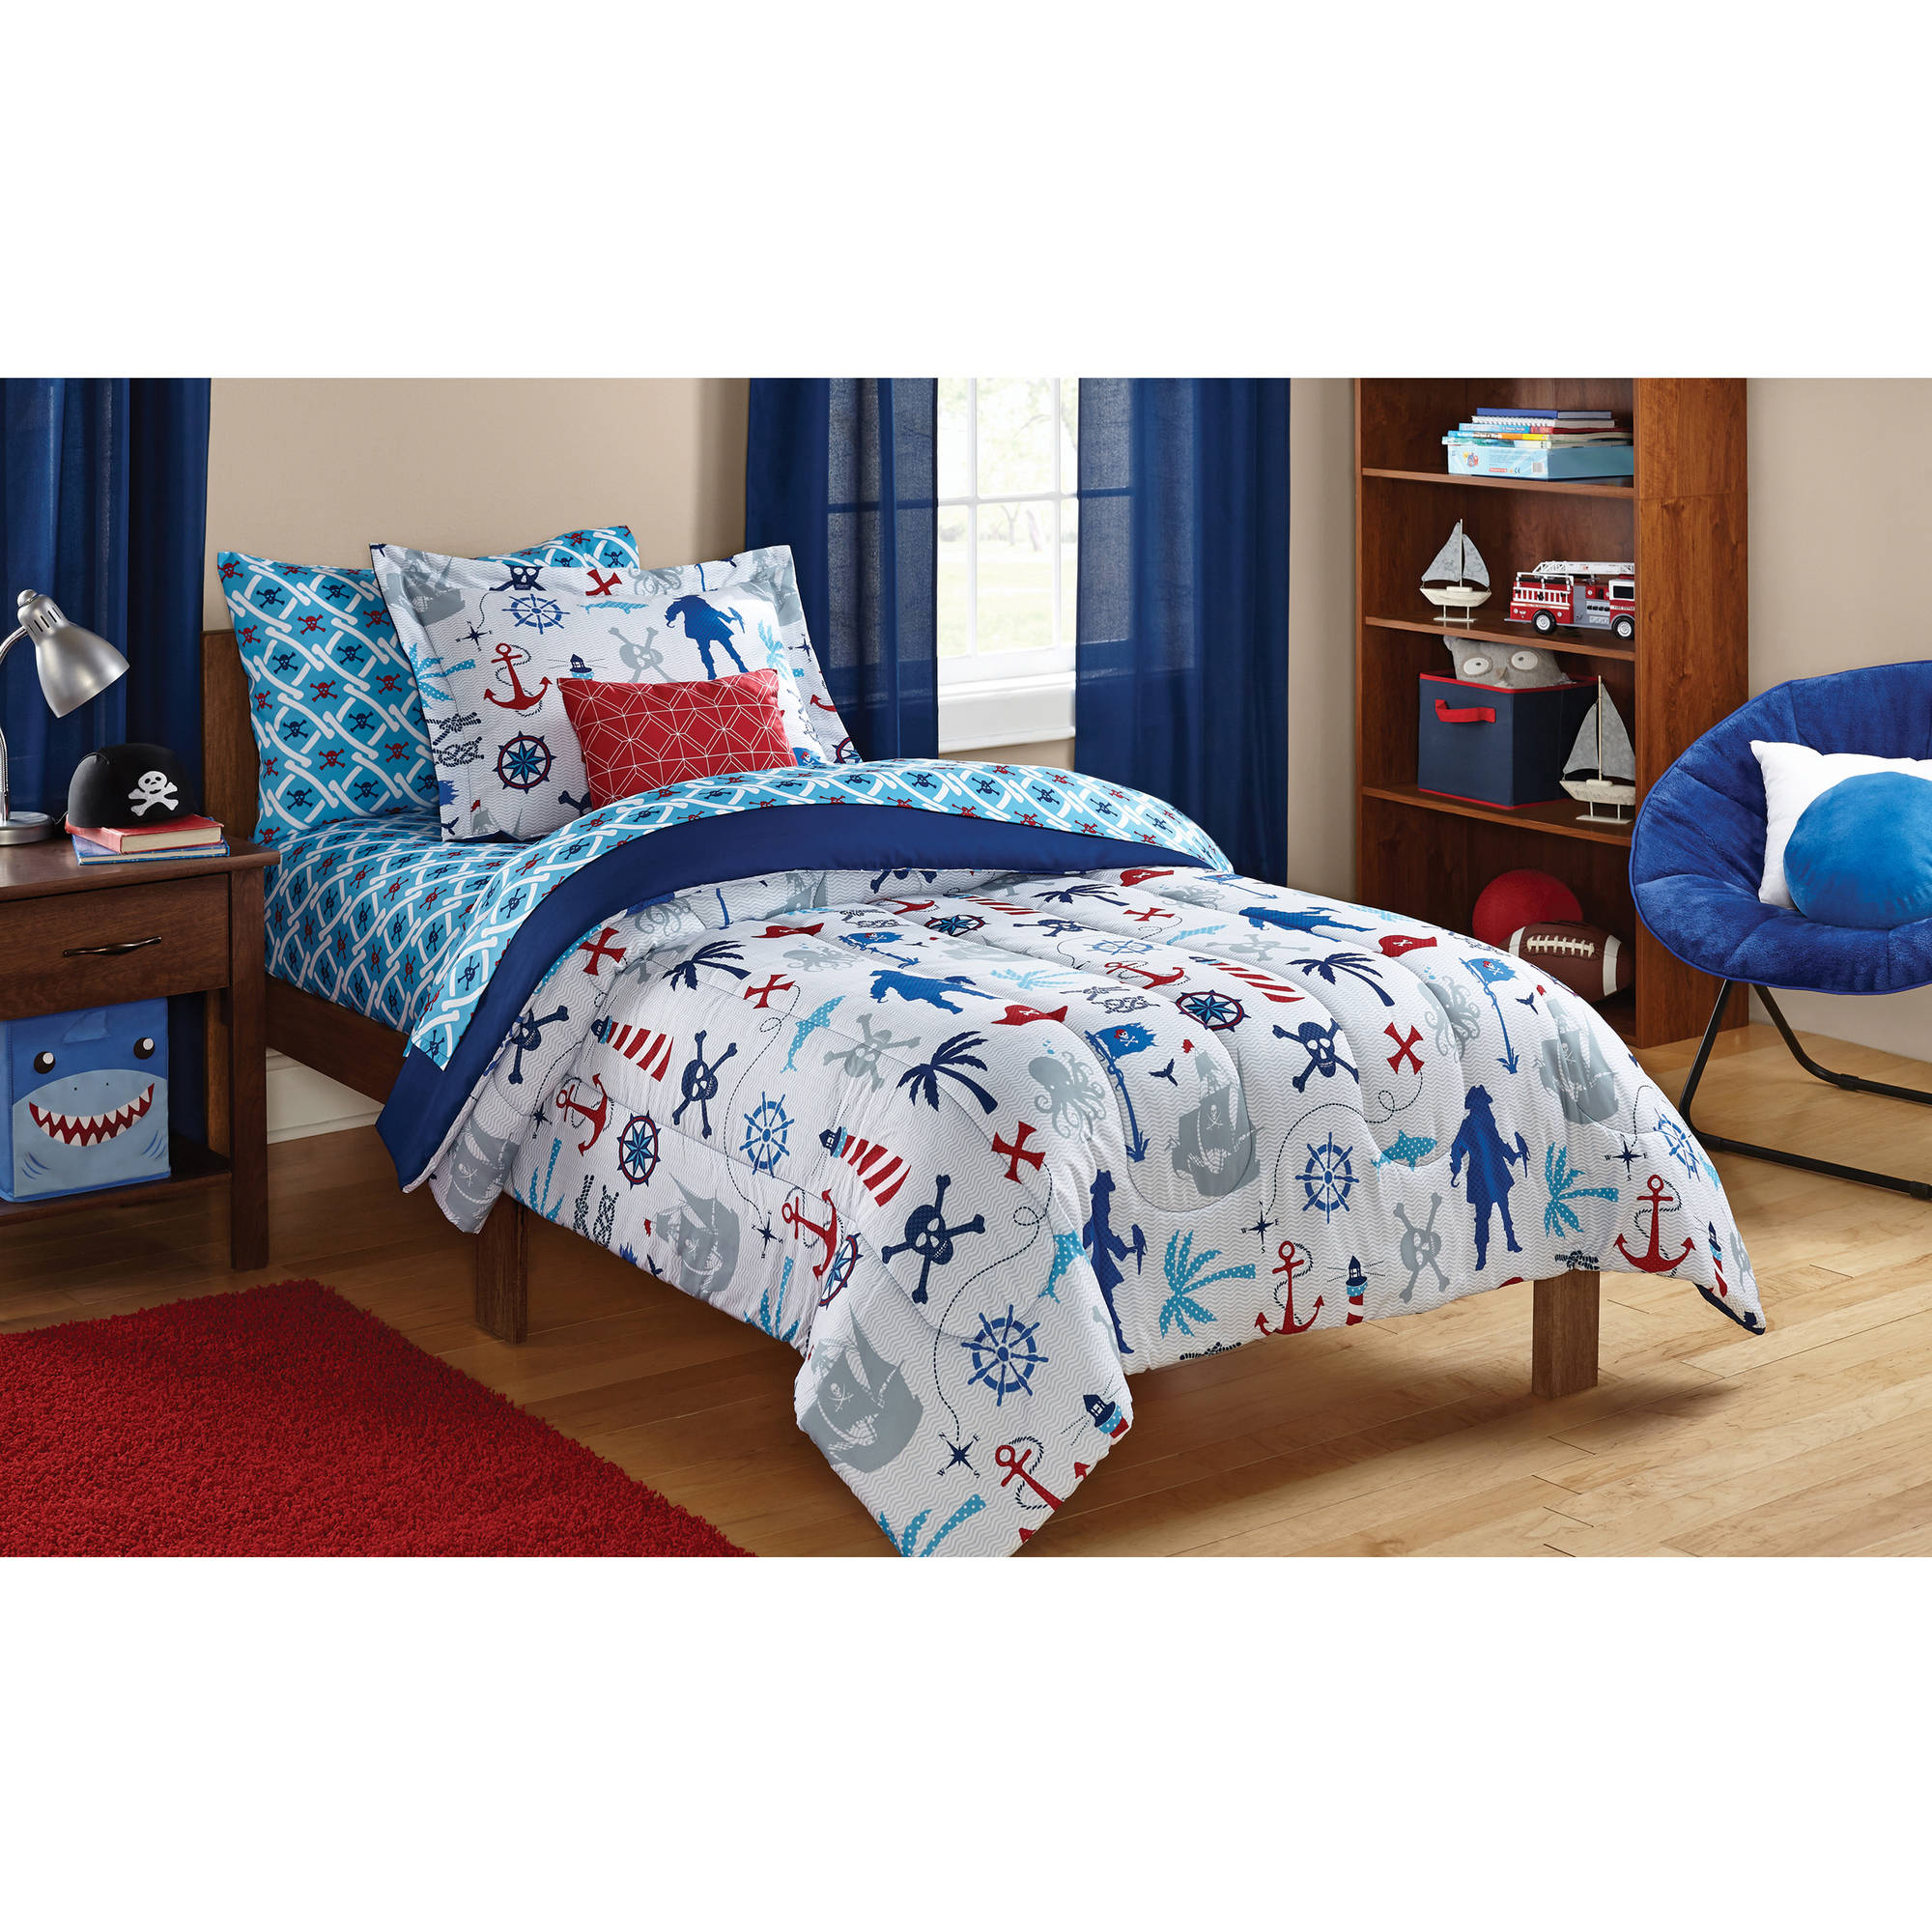 Mainstays Kids Pirate Bed In A Bag Bedding Set